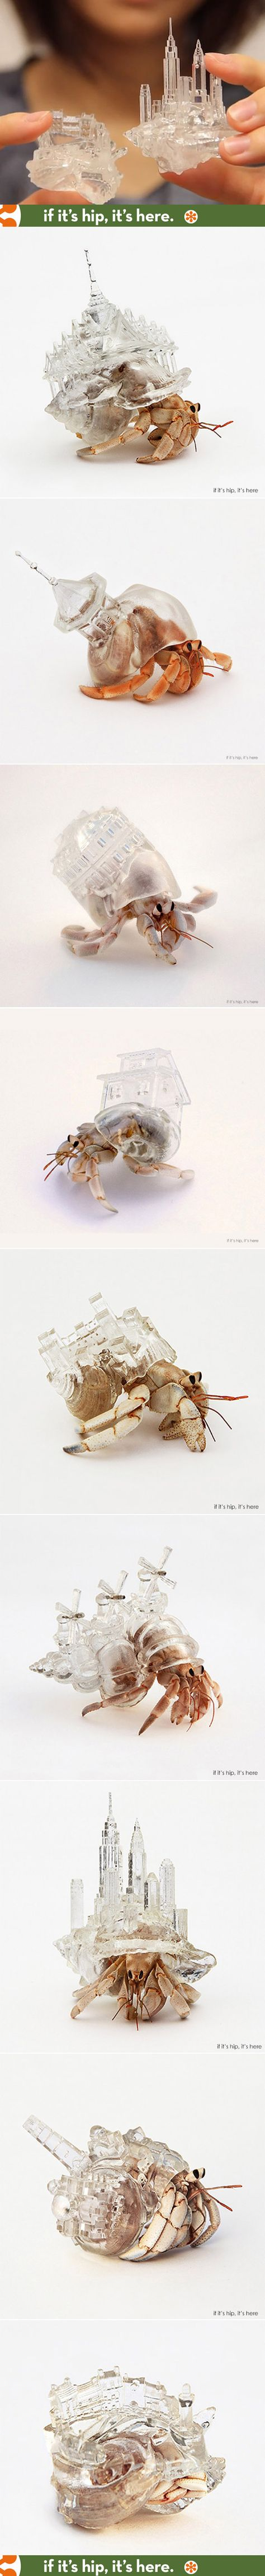 Artist Aki Inomata's #3D #printed acrylic shells for the hermit crab.